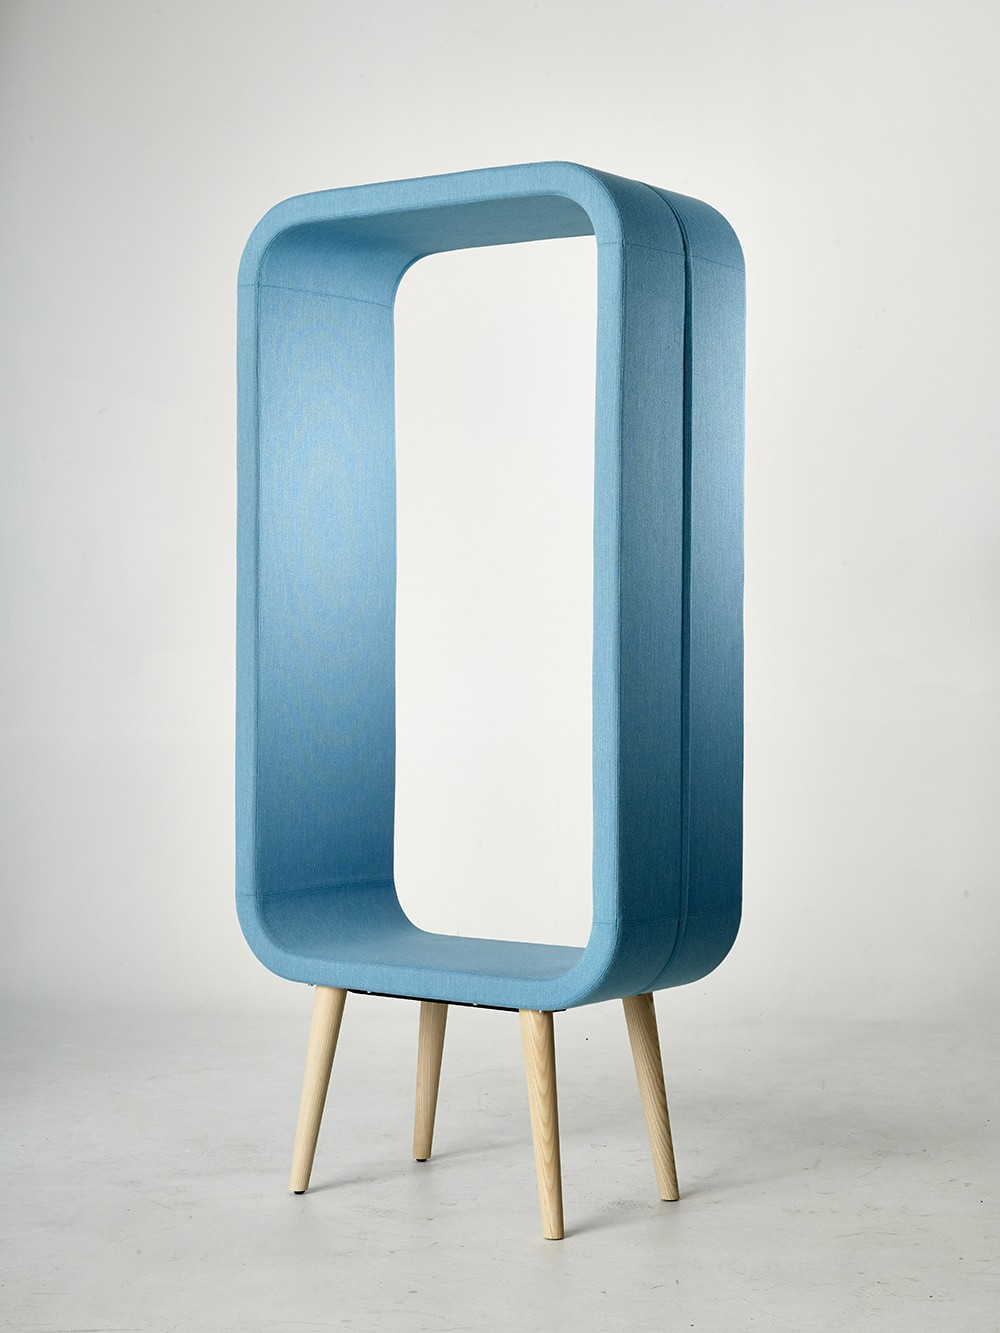 Unconventional Chair Design Frame By Ola Giertz